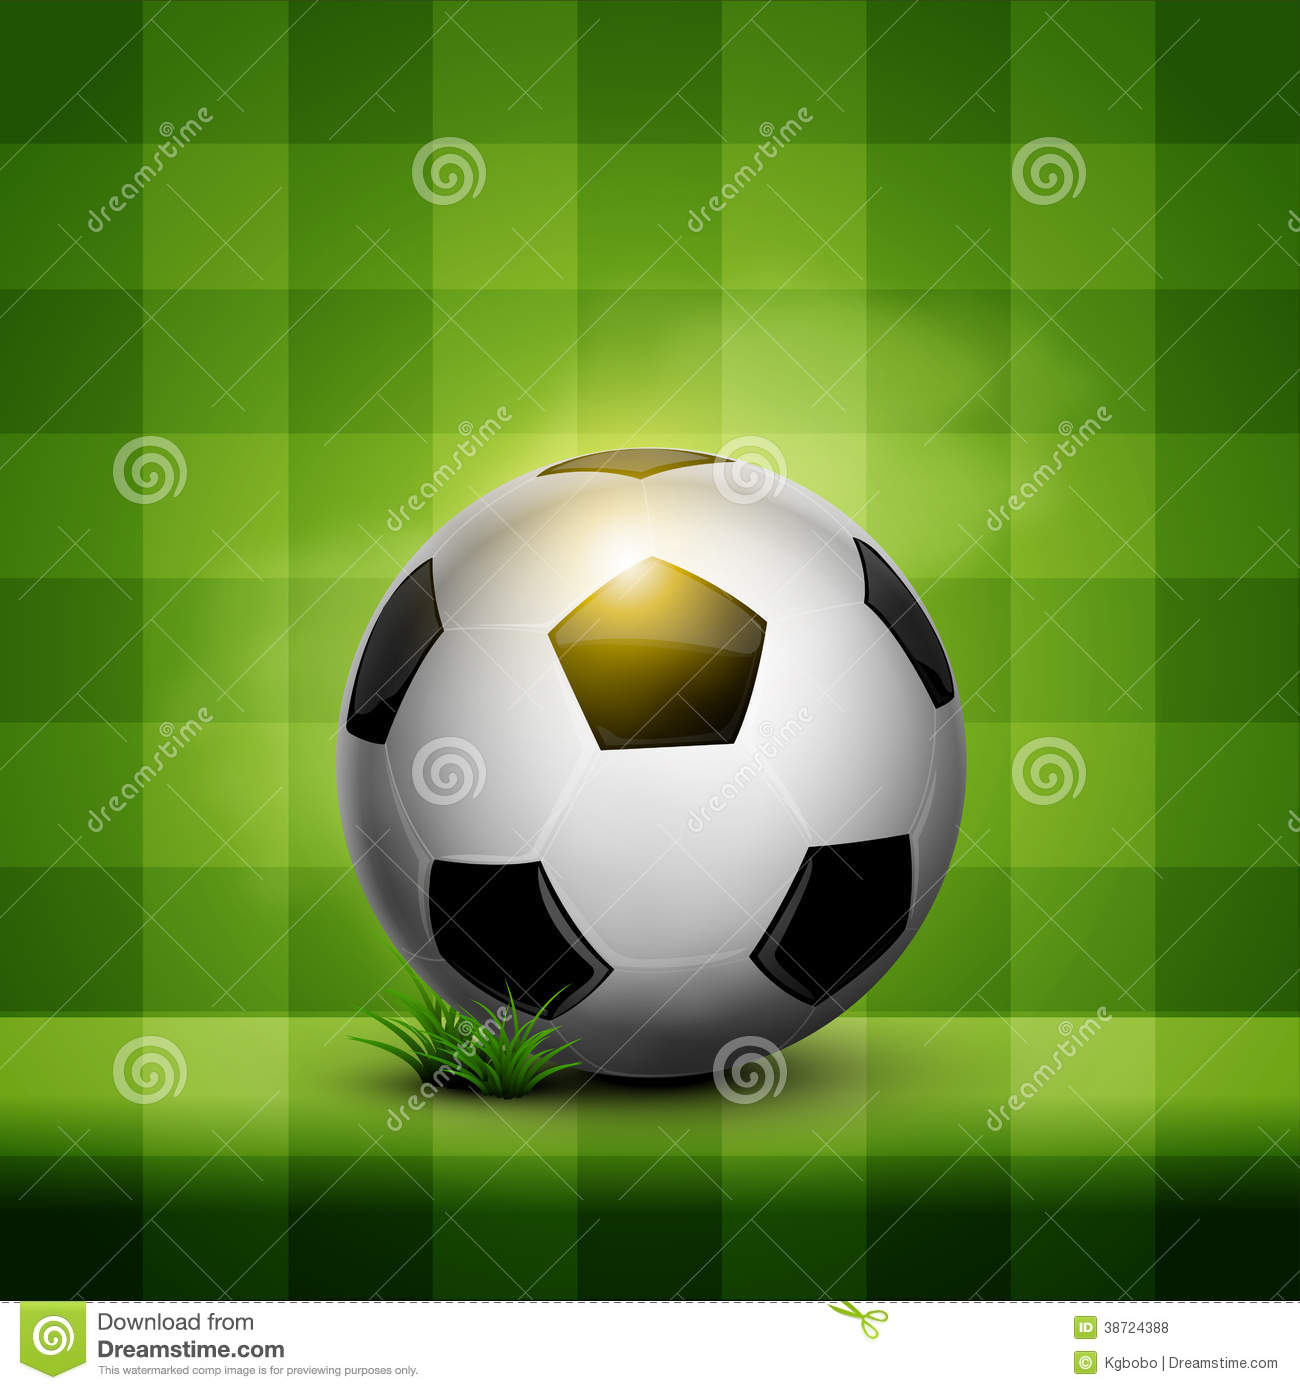 Soccer Ball On Wallpaper Royalty Free Stock Photos